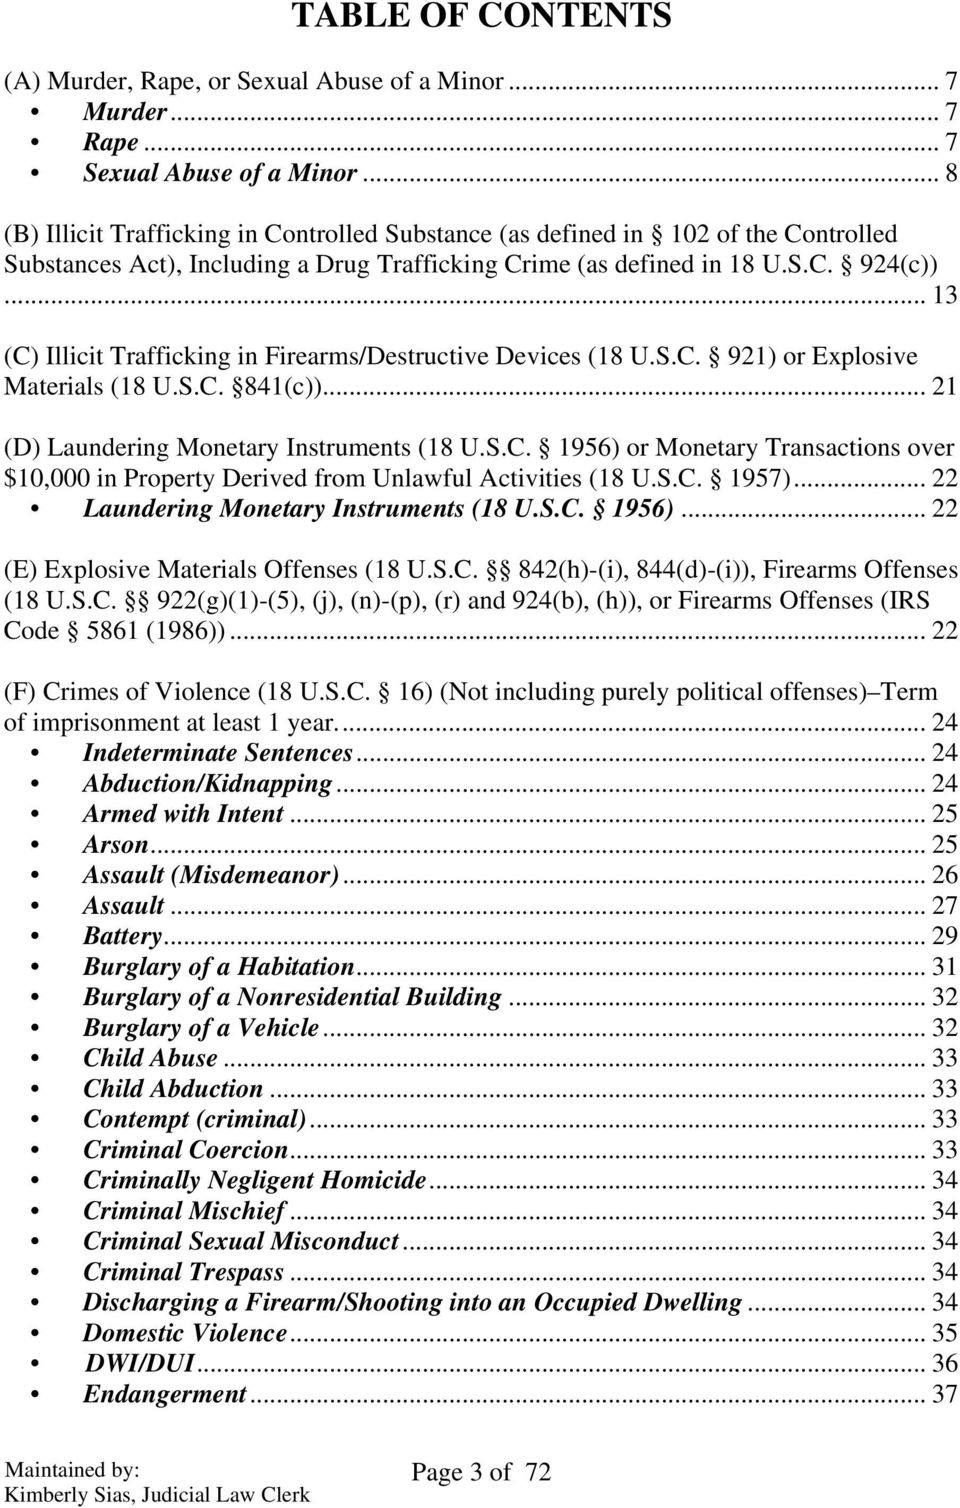 .. 13 (C) Illicit Trafficking in Firearms/Destructive Devices (18 U.S.C. 921) or Explosive Materials (18 U.S.C. 841(c))... 21 (D) Laundering Monetary Instruments (18 U.S.C. 1956) or Monetary Transactions over $10,000 in Property Derived from Unlawful Activities (18 U.